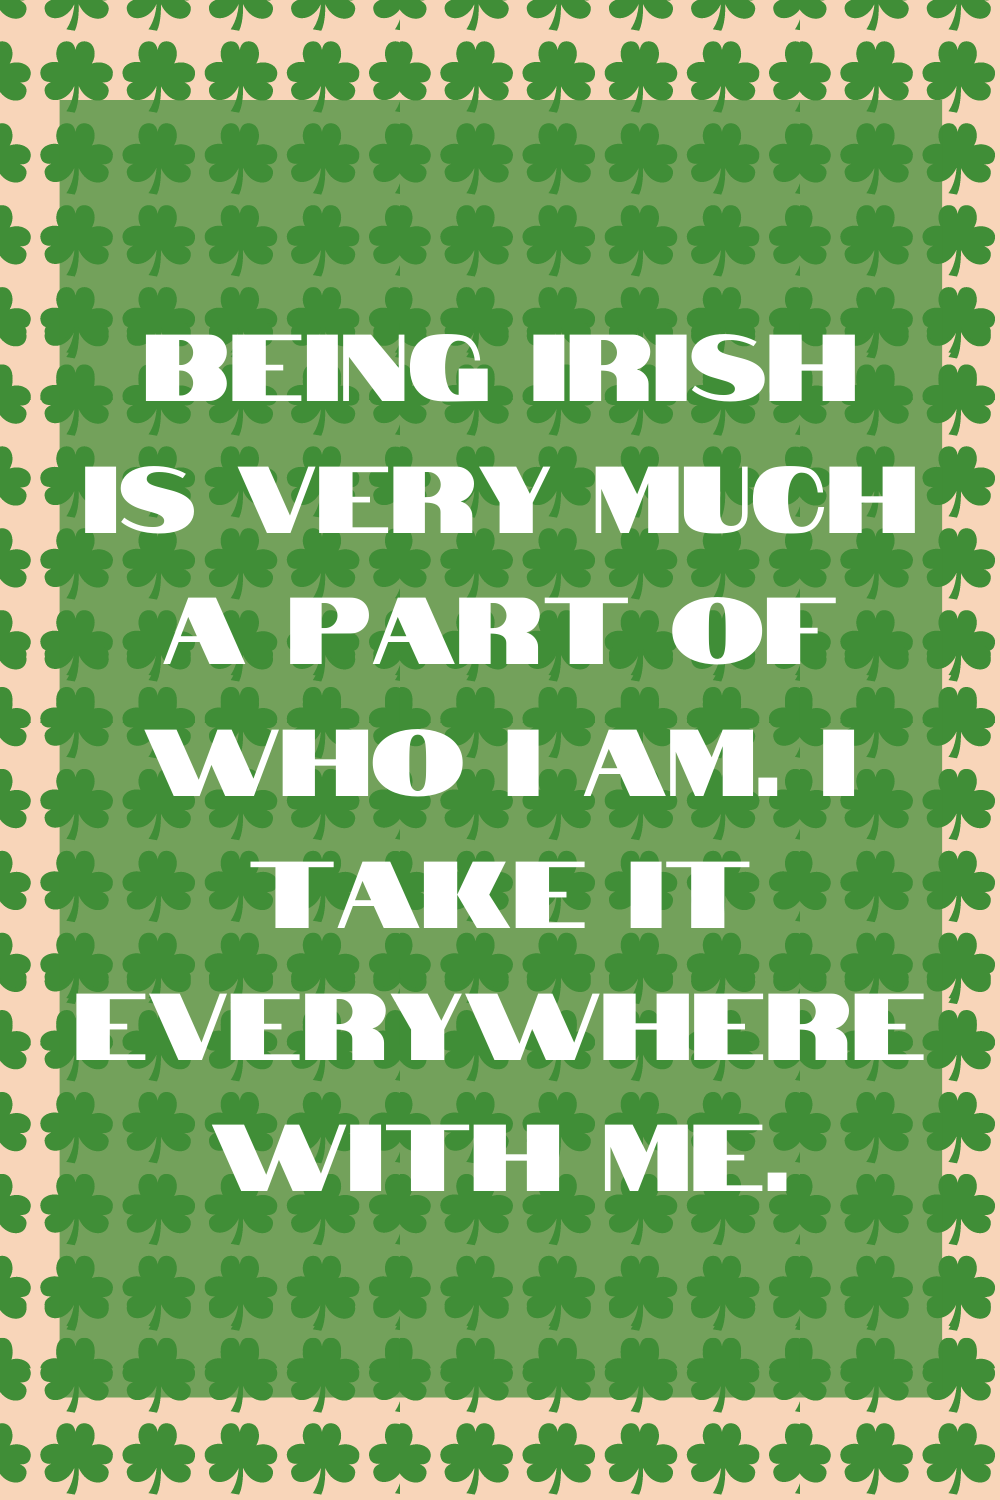 Funny Irish Quotes About Being Irish